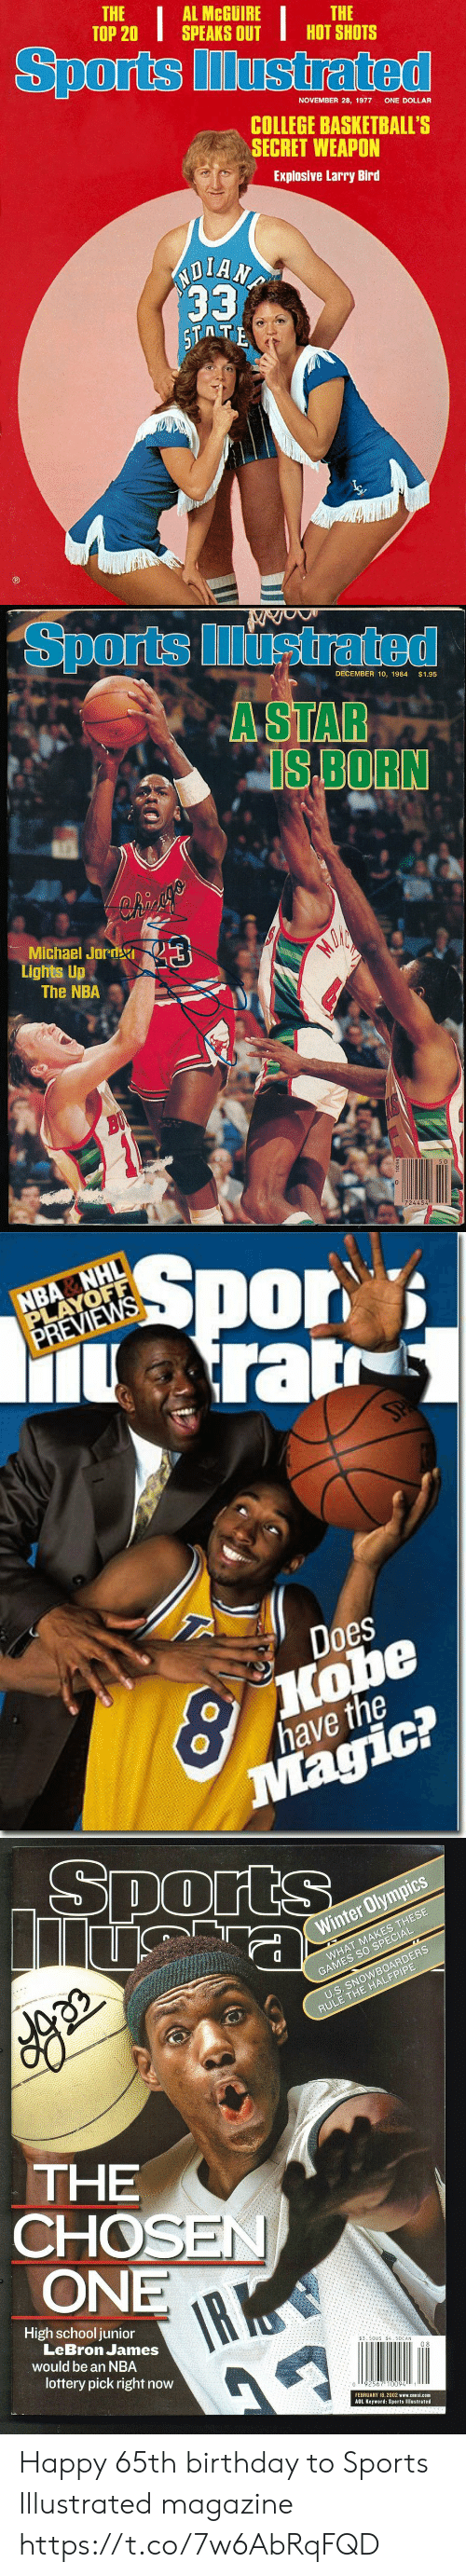 LeBron James: THE  ТОР 20  AL MCGUIRE  SPEAKS OUT  THE  HOT SHOTS  Sports Illustrated  NOVEMBER 28, 1977  ONE DOLLAR  COLLEGE BASKETBALL'S  SECRET WEAPON  Explosive Larry Bird  ND  33  5TTE   Sports ustrated  DECEMBER 10, 1984  $1.95  A STAR  IS BORN  3  Michael JordRI  Lights Up  The NBA  BU  724454   NBA NHL  PLAYOFF  PREVIEWS  Spor  Arar  SPA  Does  Kobe  have the  Magic?   Sports  Winter Olympics  WHAT MAKES THESE  GAMES SO SPECIAL  U.S. SNOWBOARDERS  RULE THE HALFPIPE  THE  CHOSEN  ONE  IR K  High school junior  LeBron James  would be an NBA  $3.50US $4.50CAN  lottery pick right now  08  92567 10094  FEBRUARY 18, 2002 www.cnnsi.com  AOL Keyword: Sports lllustrated Happy 65th birthday to Sports Illustrated magazine https://t.co/7w6AbRqFQD